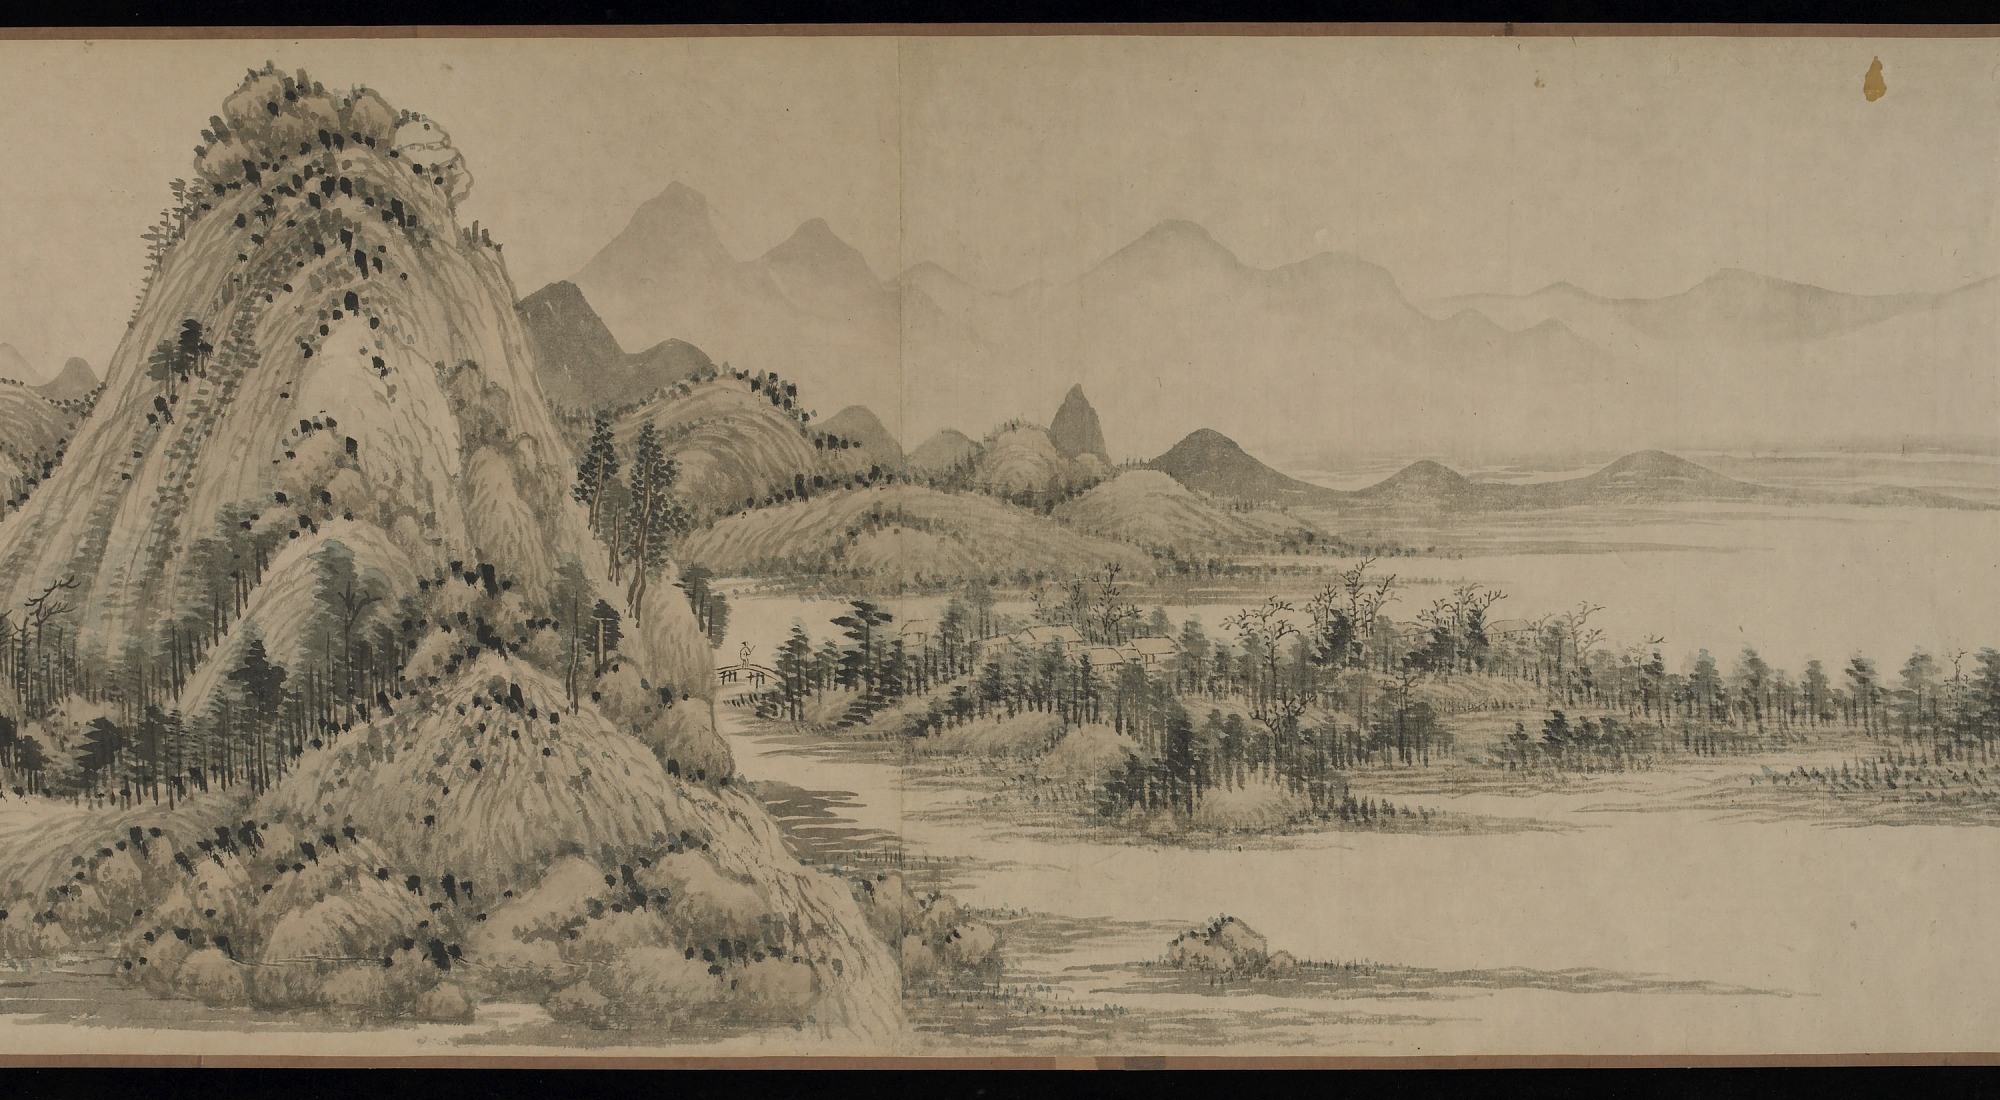 section 10: Dwelling in the Fuchun Mountains after Huang Gongwang